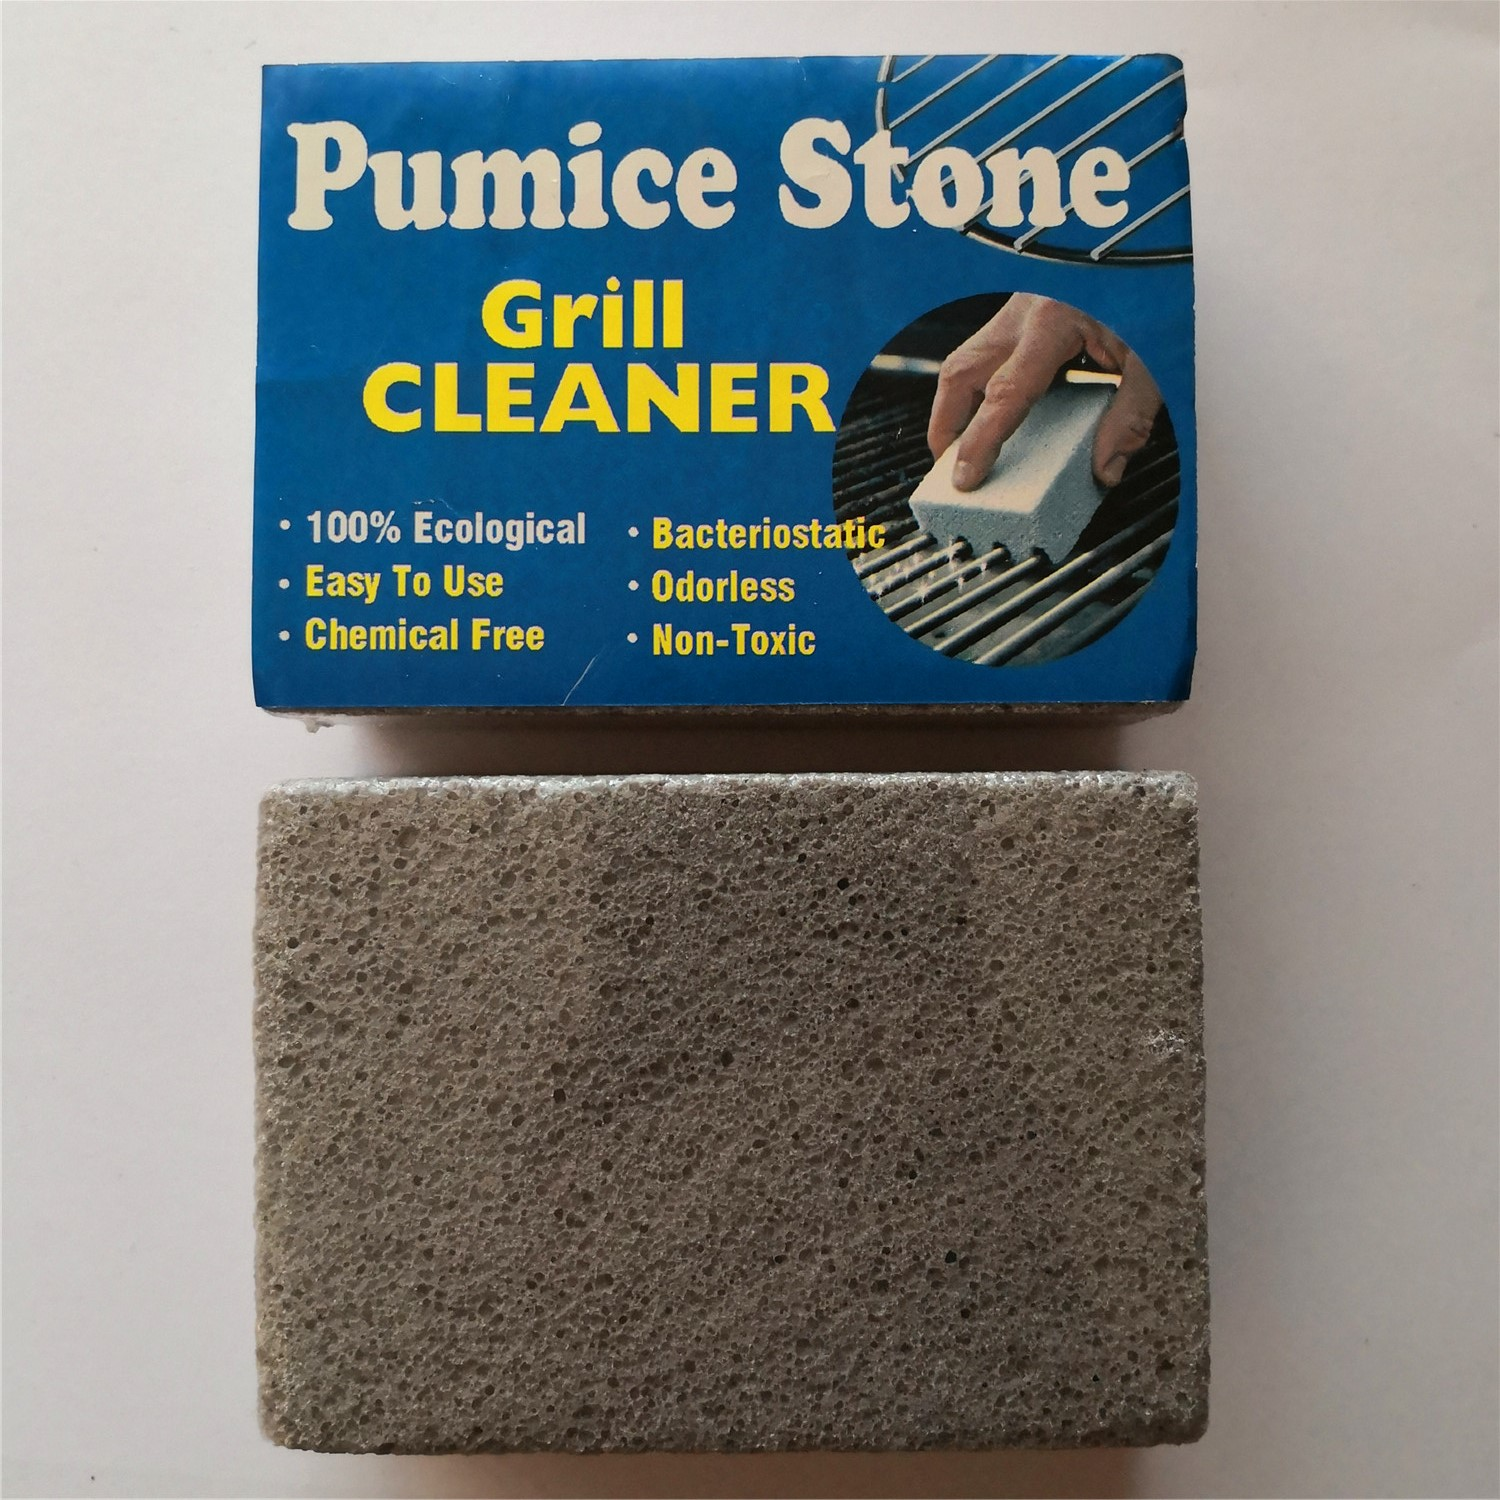 cleaning products Grill Pumice Stone to USA